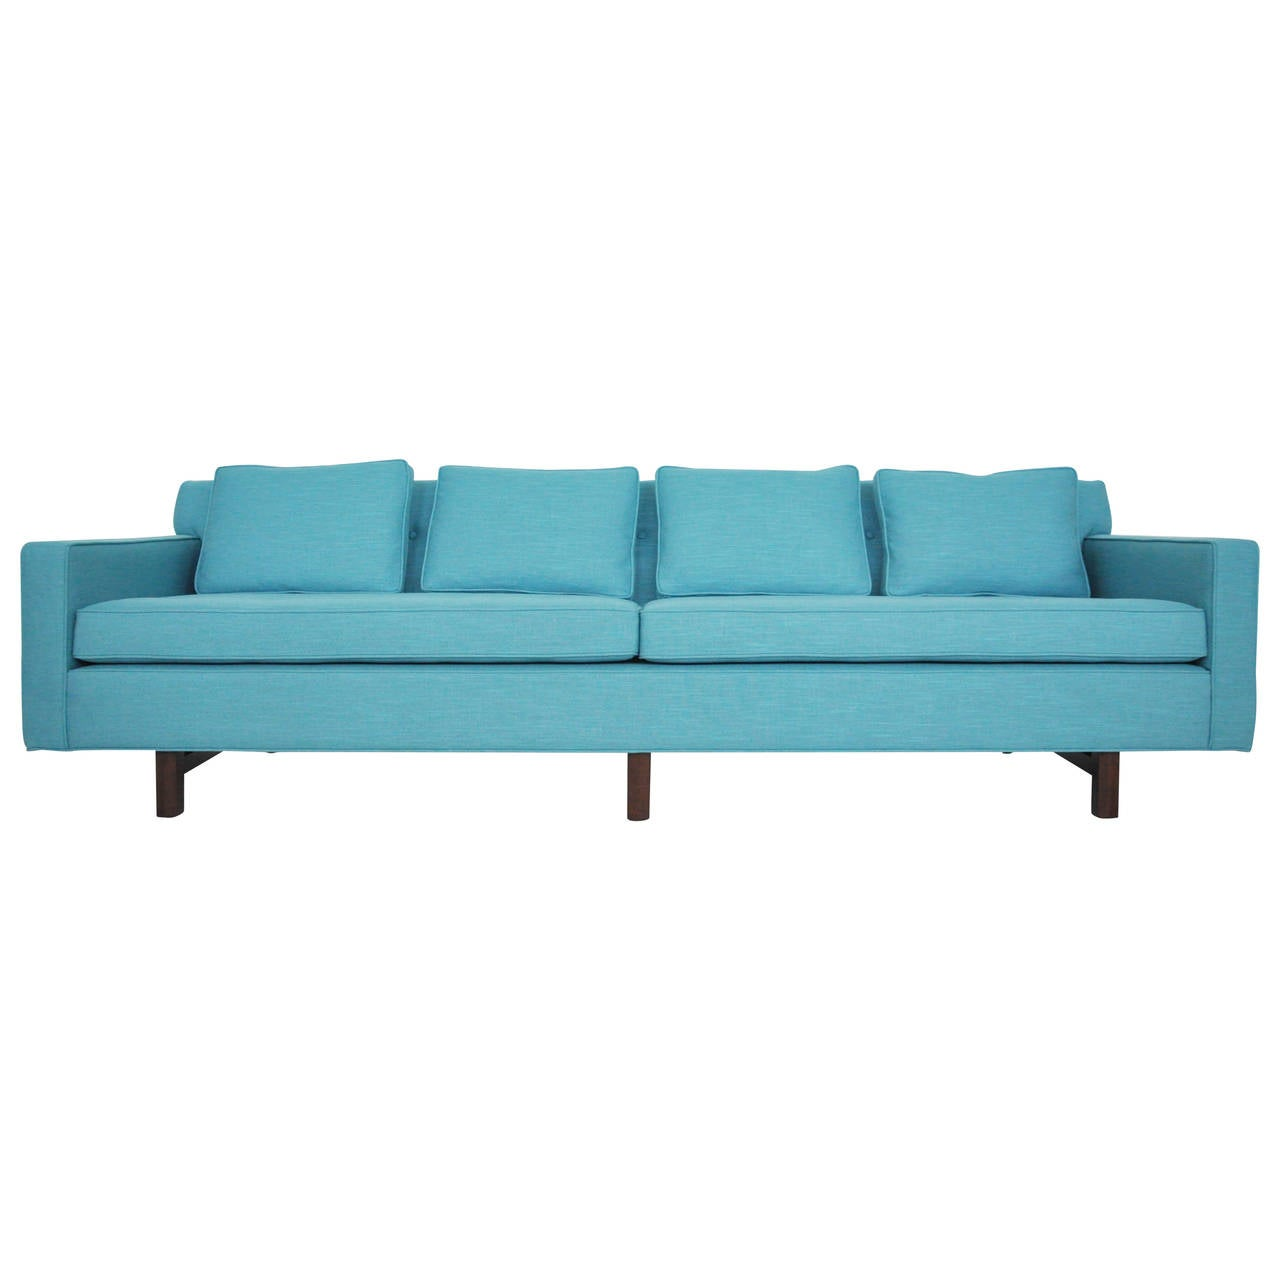 Dunbar Sofa by Edward Wormley